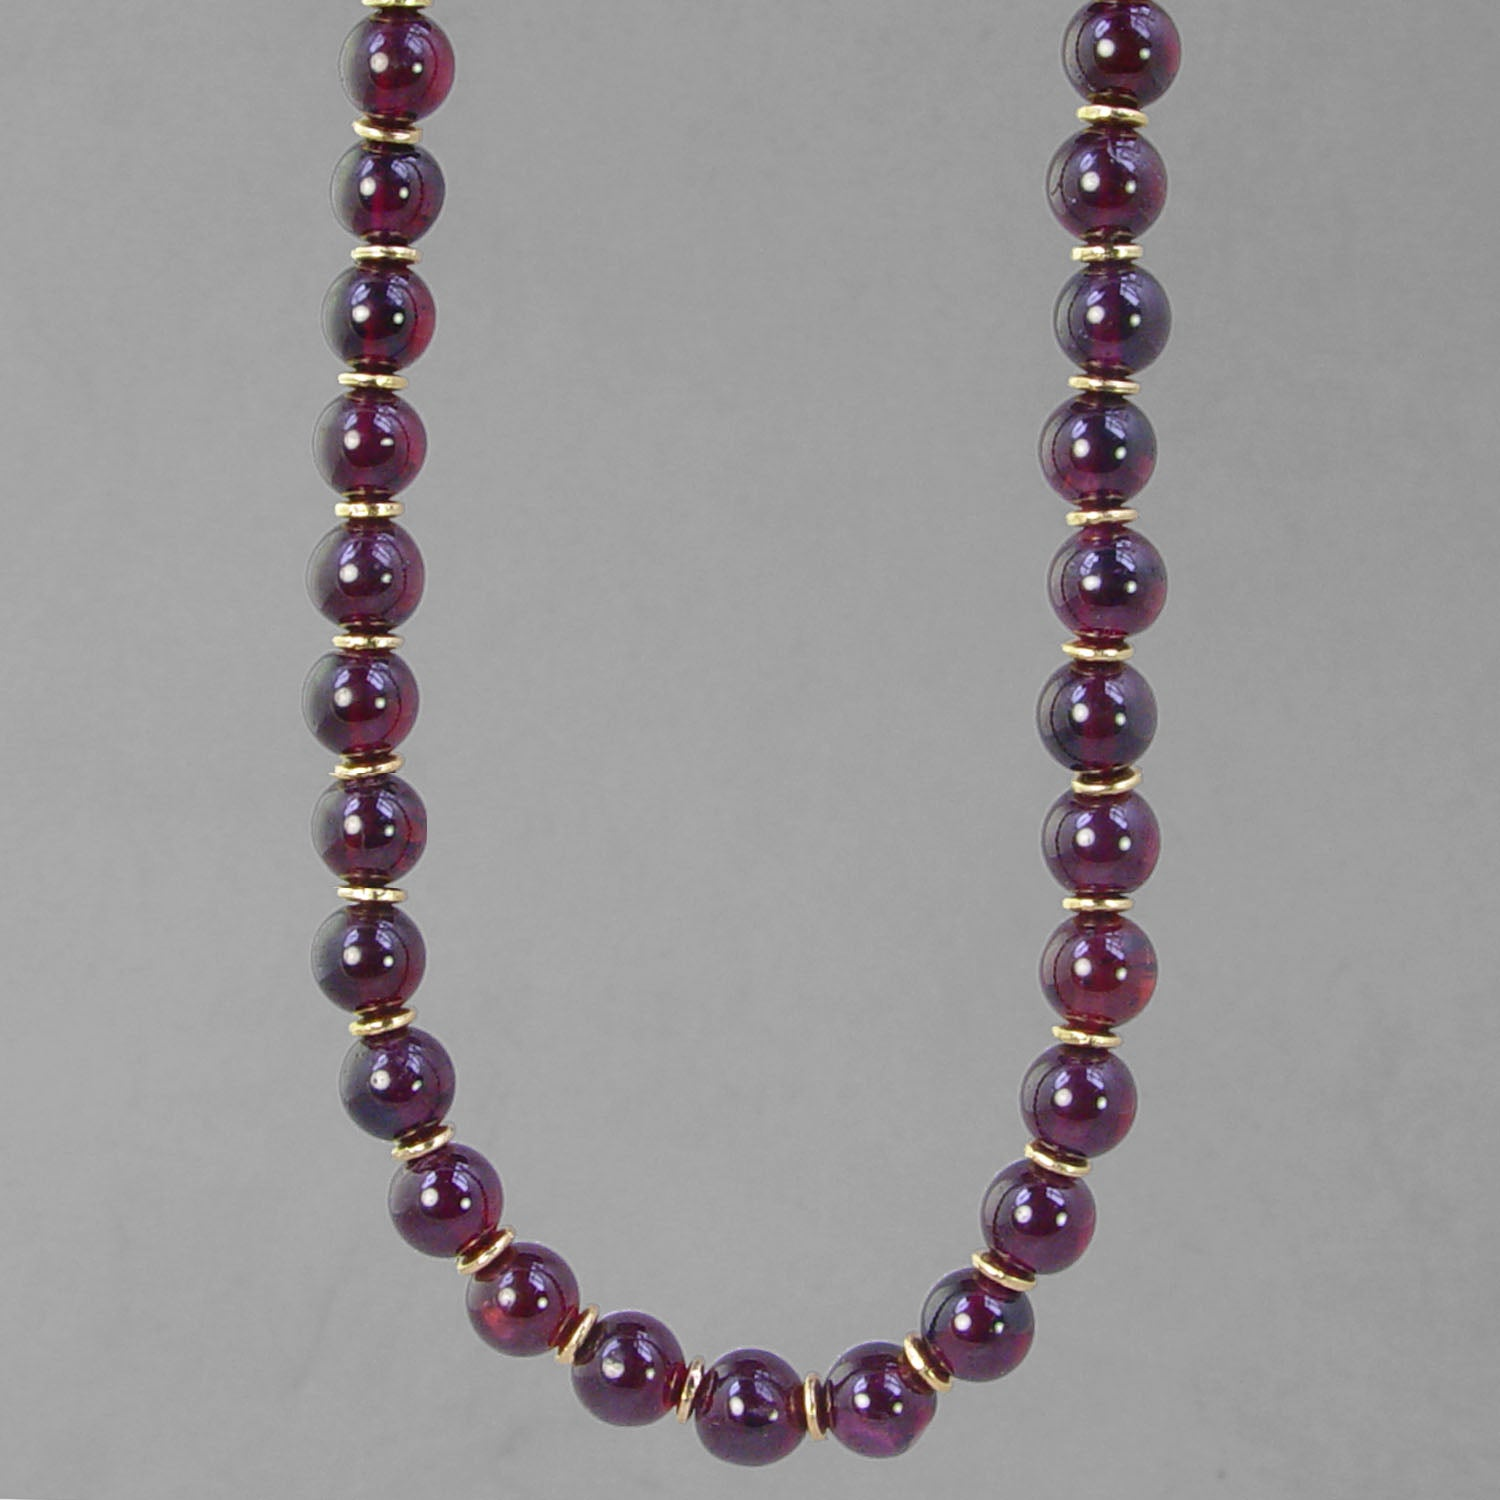 "Garnet Round Bead with Accents 16"", 18"", 20"" or 24"" Necklace"